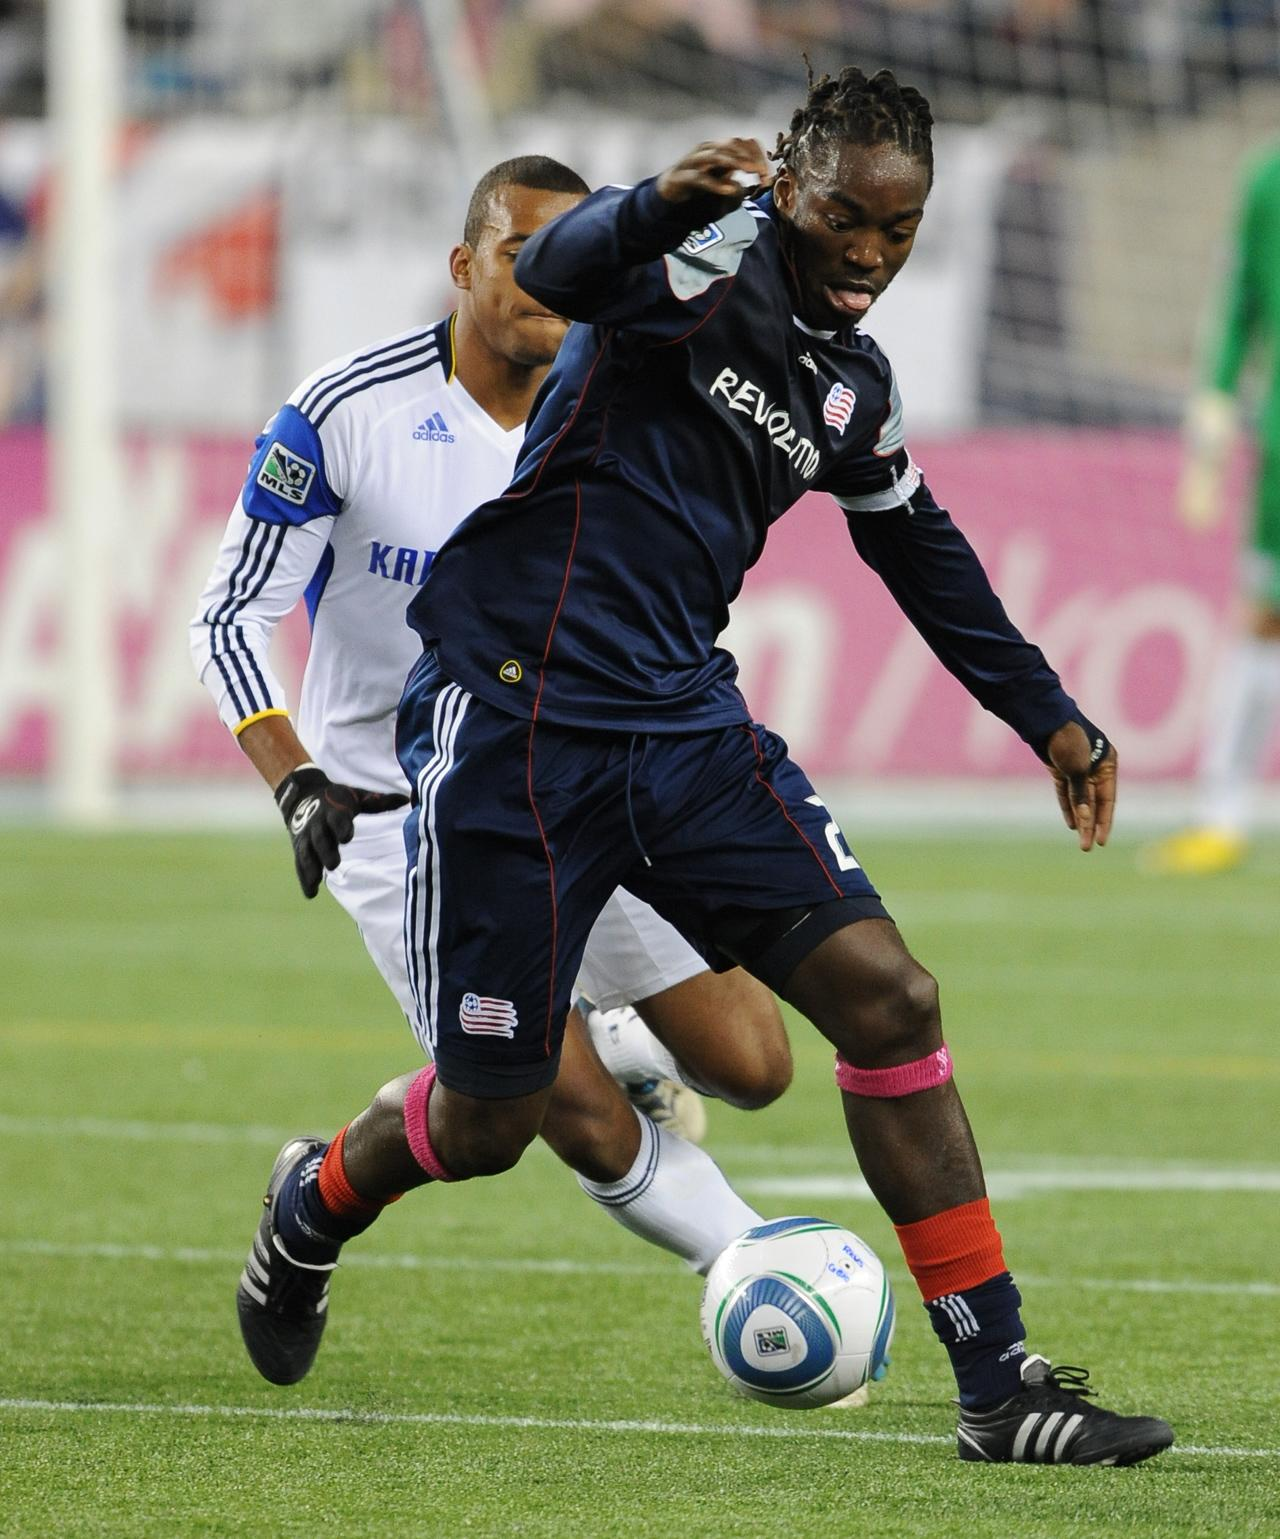 Shalrie Joseph's fourth goal in the last five games lifted the Revs to victory over the Wizards